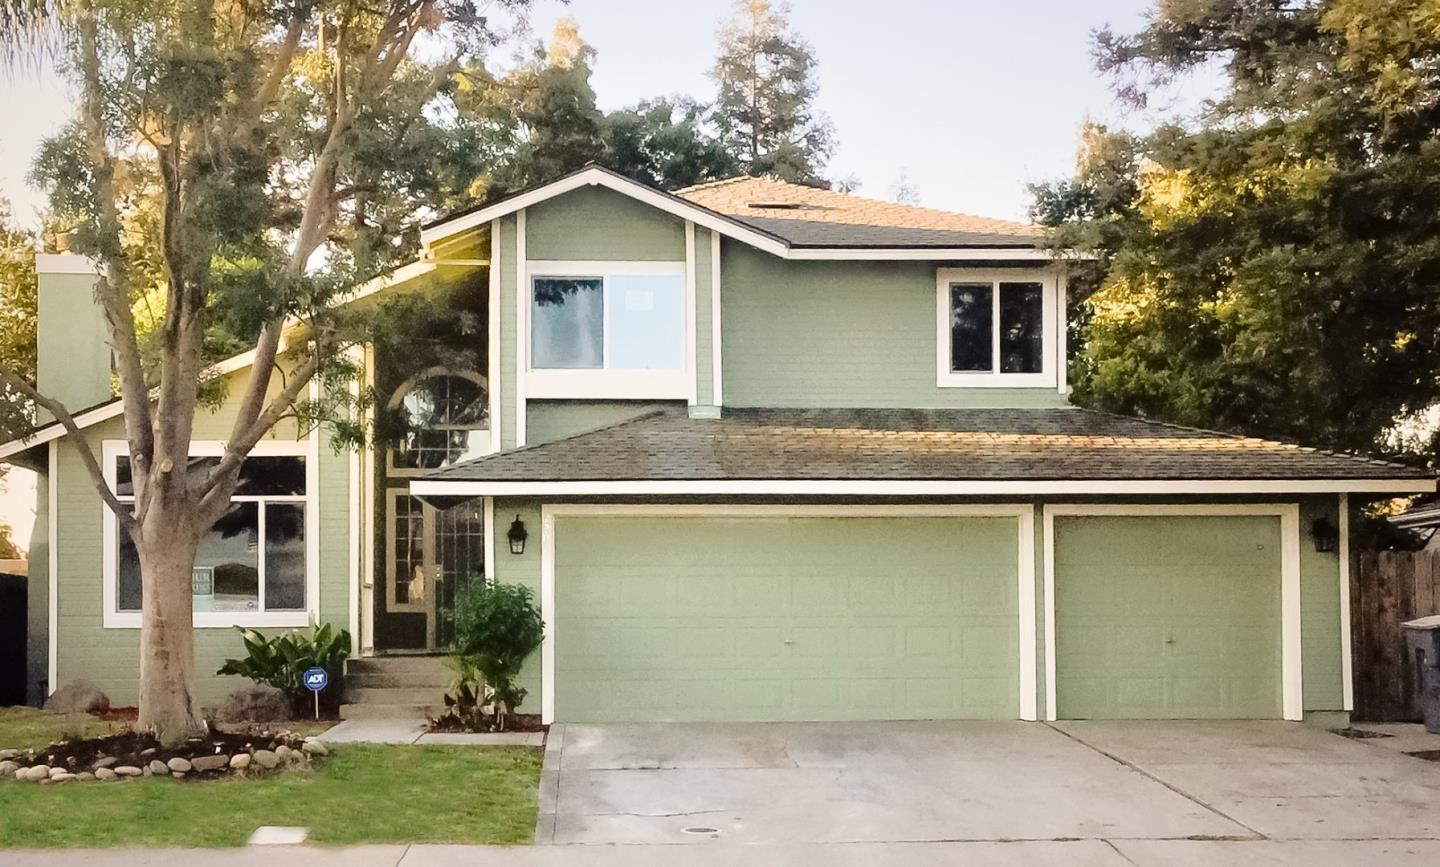 Casa Unifamiliar por un Venta en 2207 Colony Manor Drive 2207 Colony Manor Drive Riverbank, California 95367 Estados Unidos